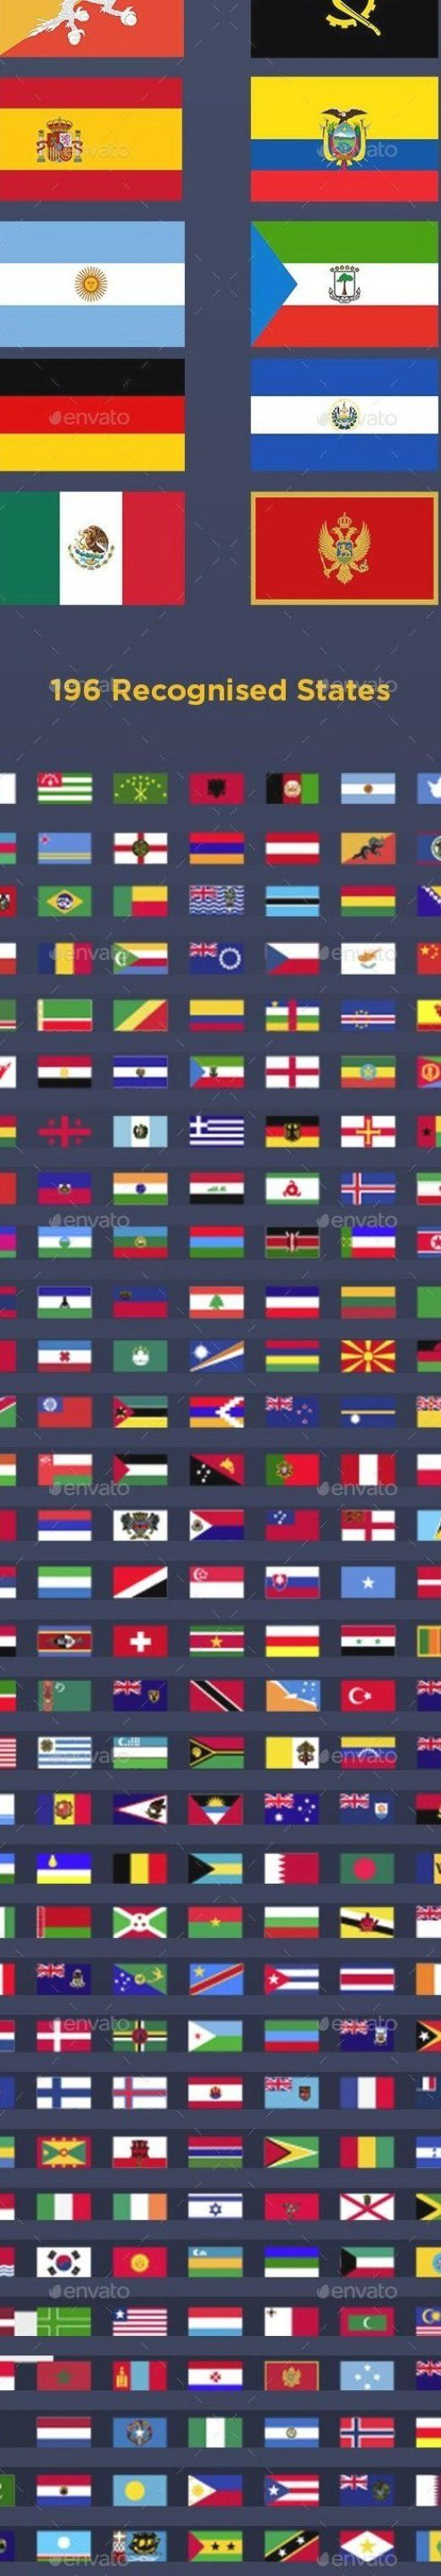 200  World Flags  Fully customisable set of icons  #icon #design #art #digitalArt #accurate #africa #america #asia #australia #countries #detailed #europe #flag #flags #flat #france #germany #high #HighResolution #icons #illustrator #original #photoshop #quality #recognised #resizable #shape #spain #state #united #UnitedStates #usa #vector #world